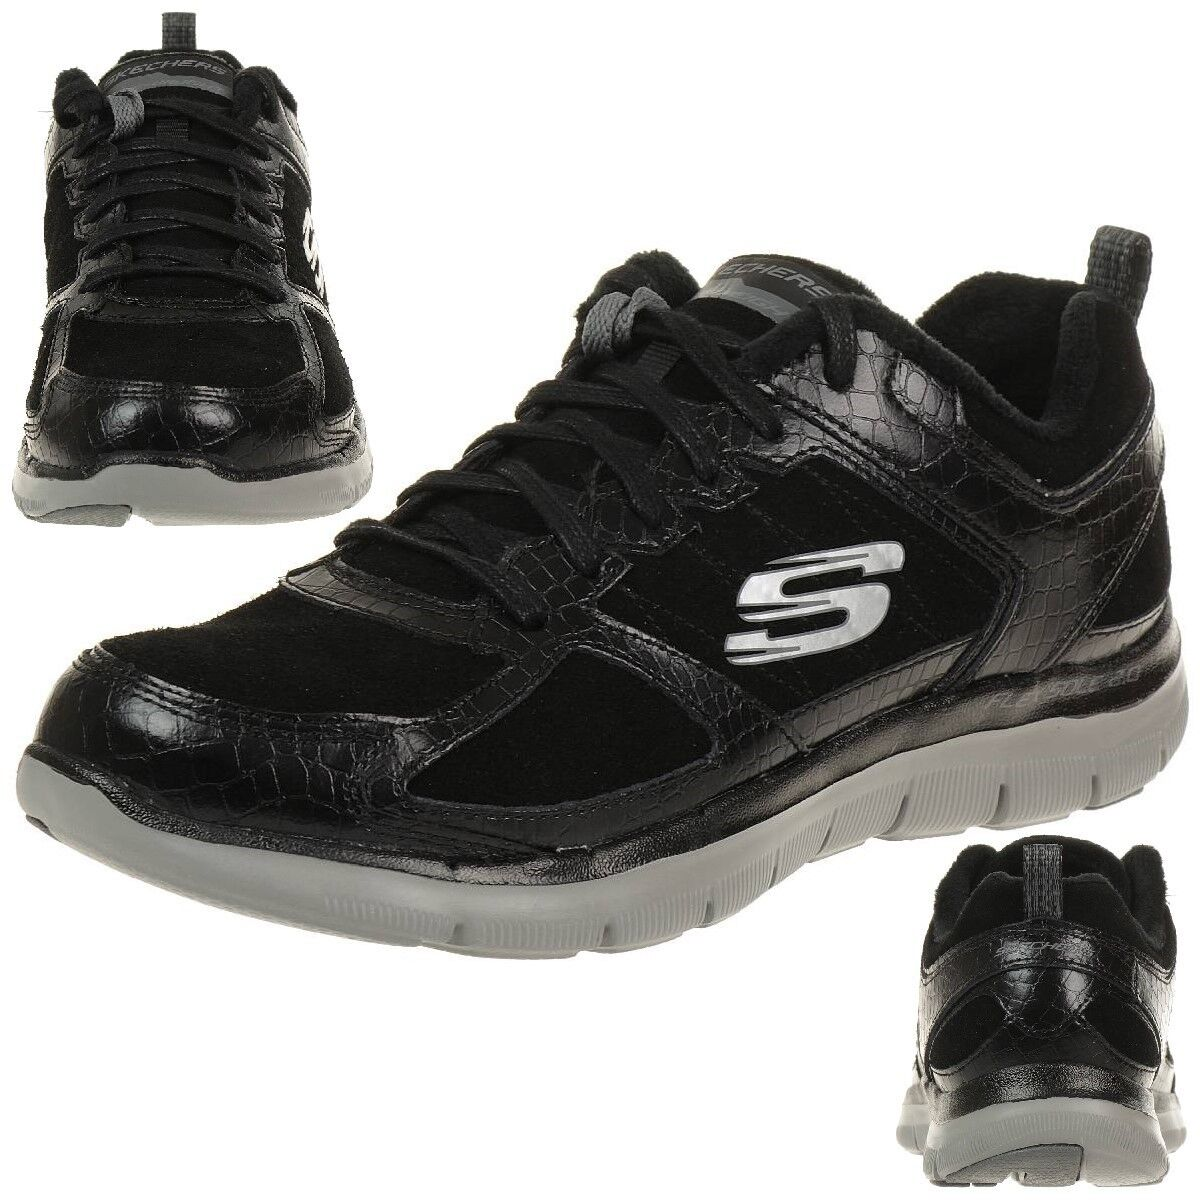 Skechers Flex Appeal 2.0 Suave Shock mujer Zapatos para para para fitness Skech Negro Lite  wholesape barato